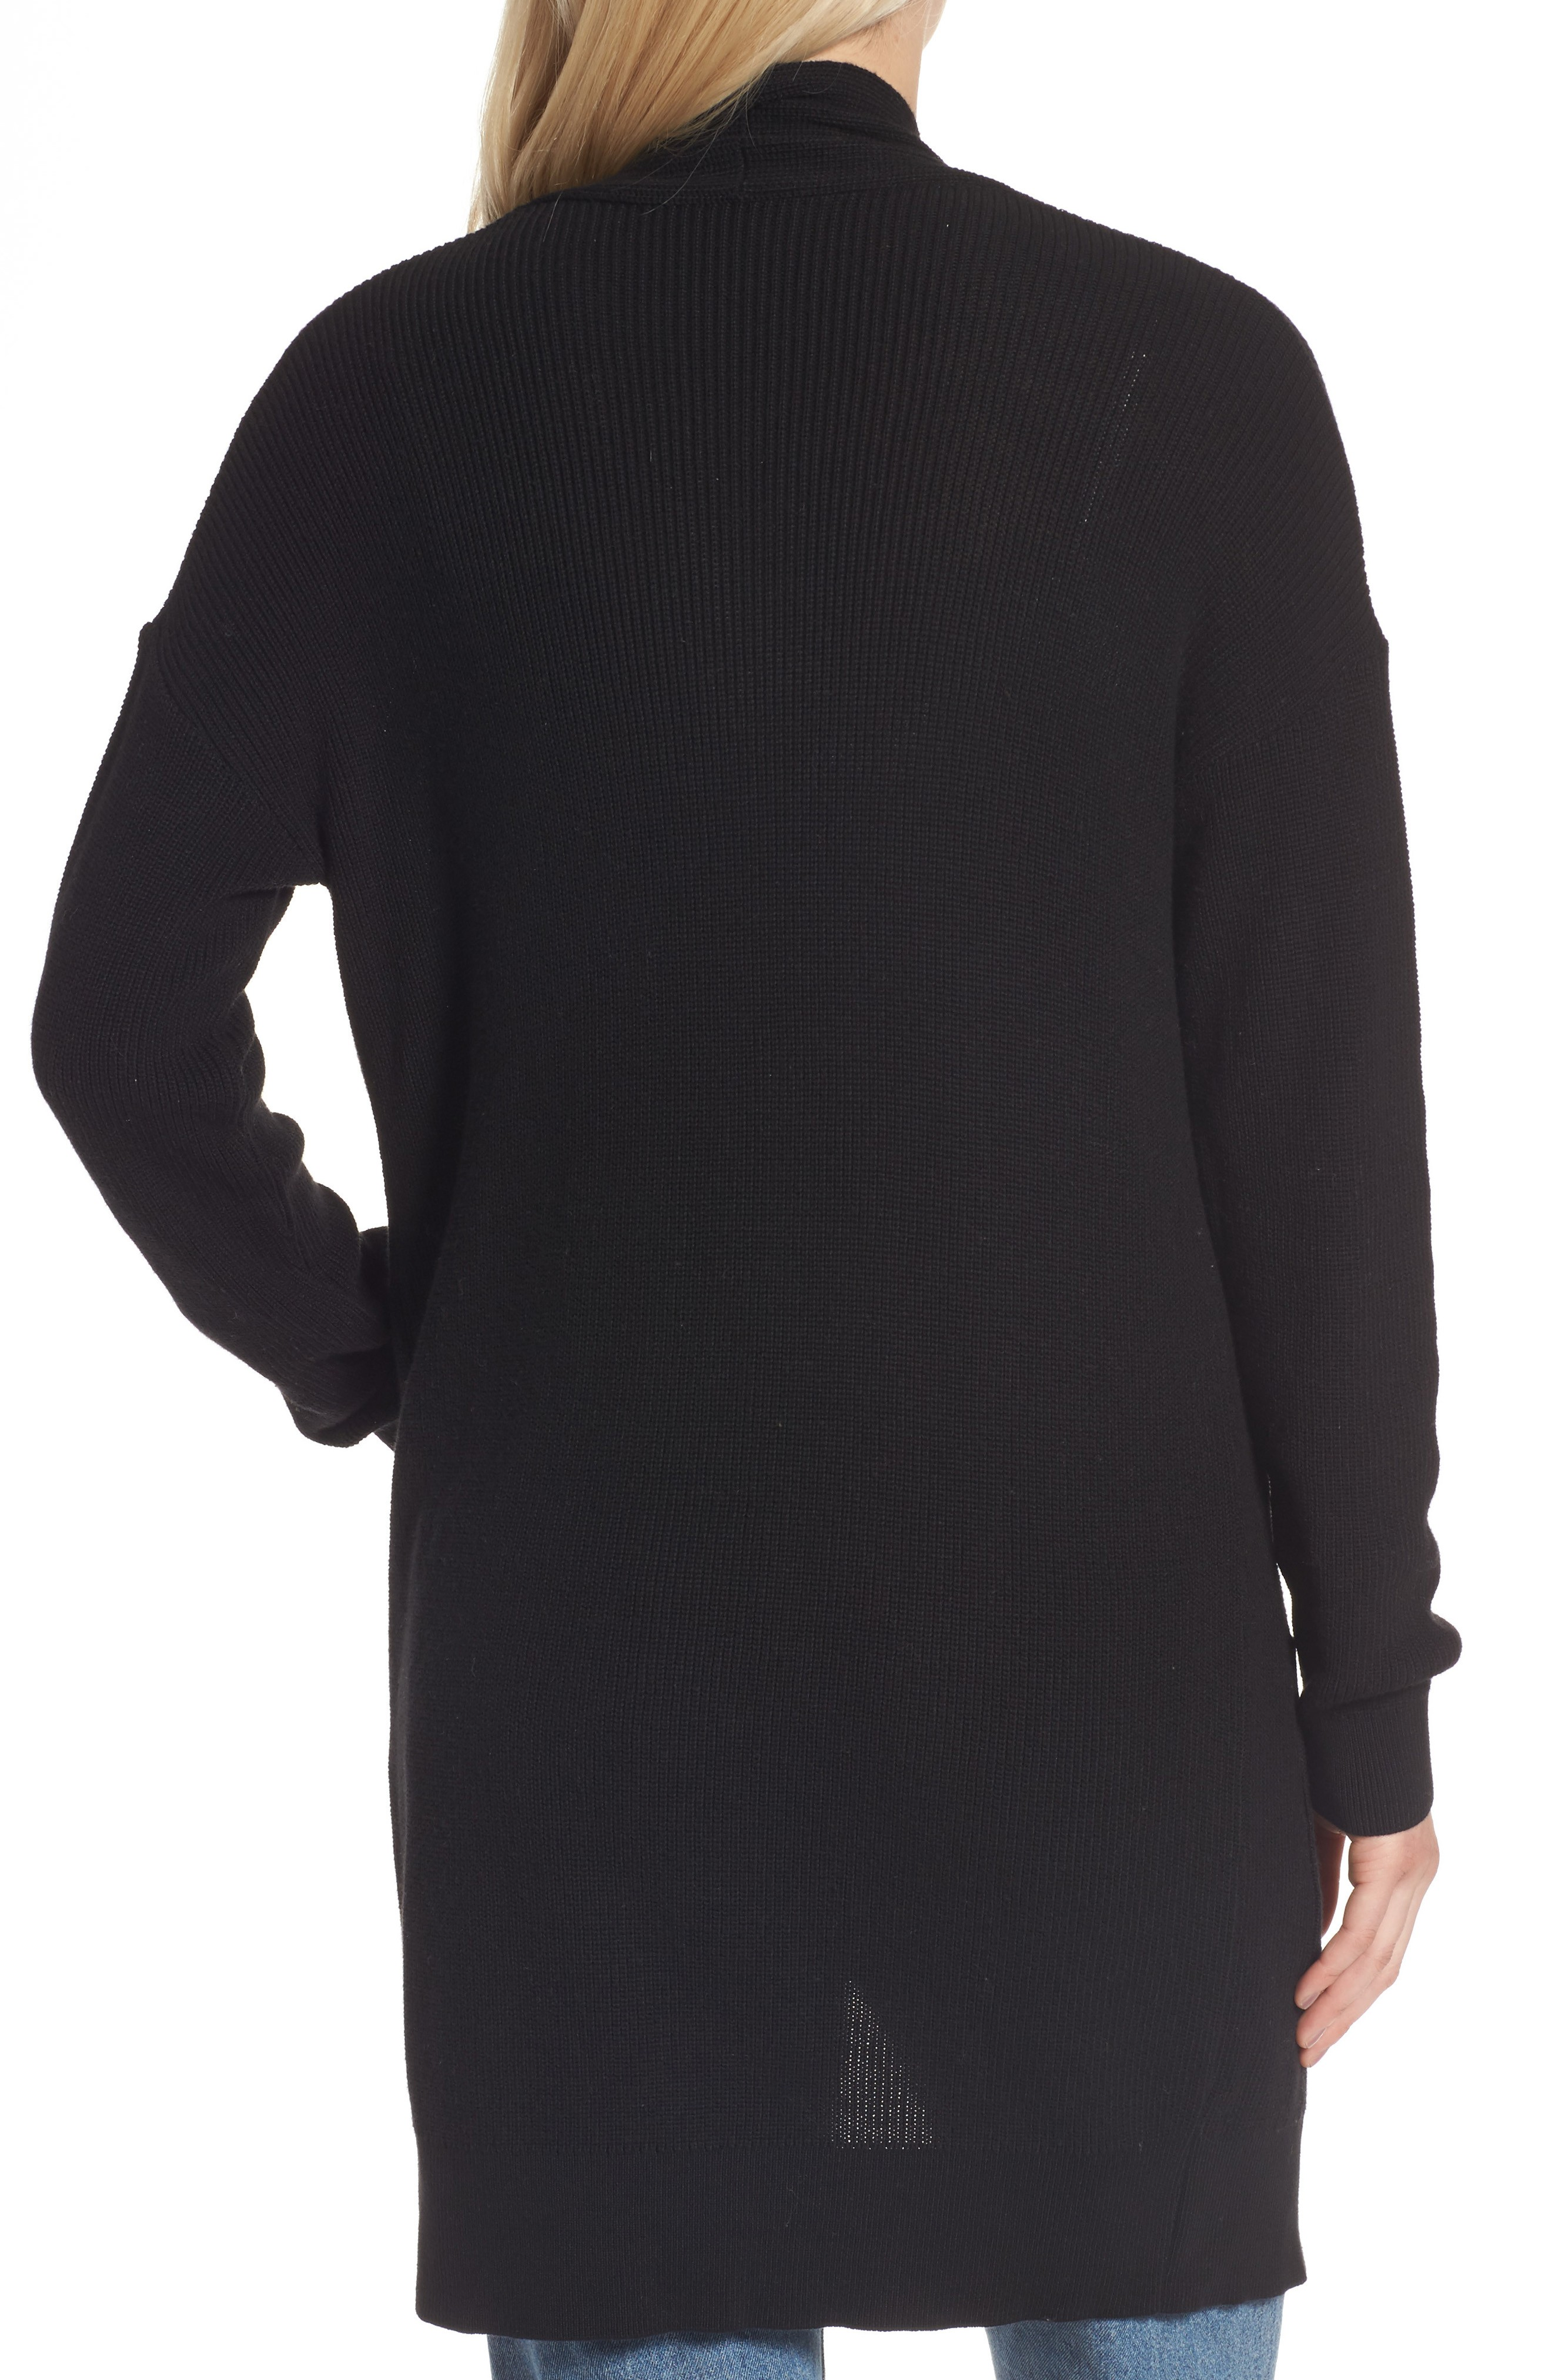 black cardigan womenu0027s cardigan sweaters: long, cropped u0026 more | nordstrom dpfwjwv